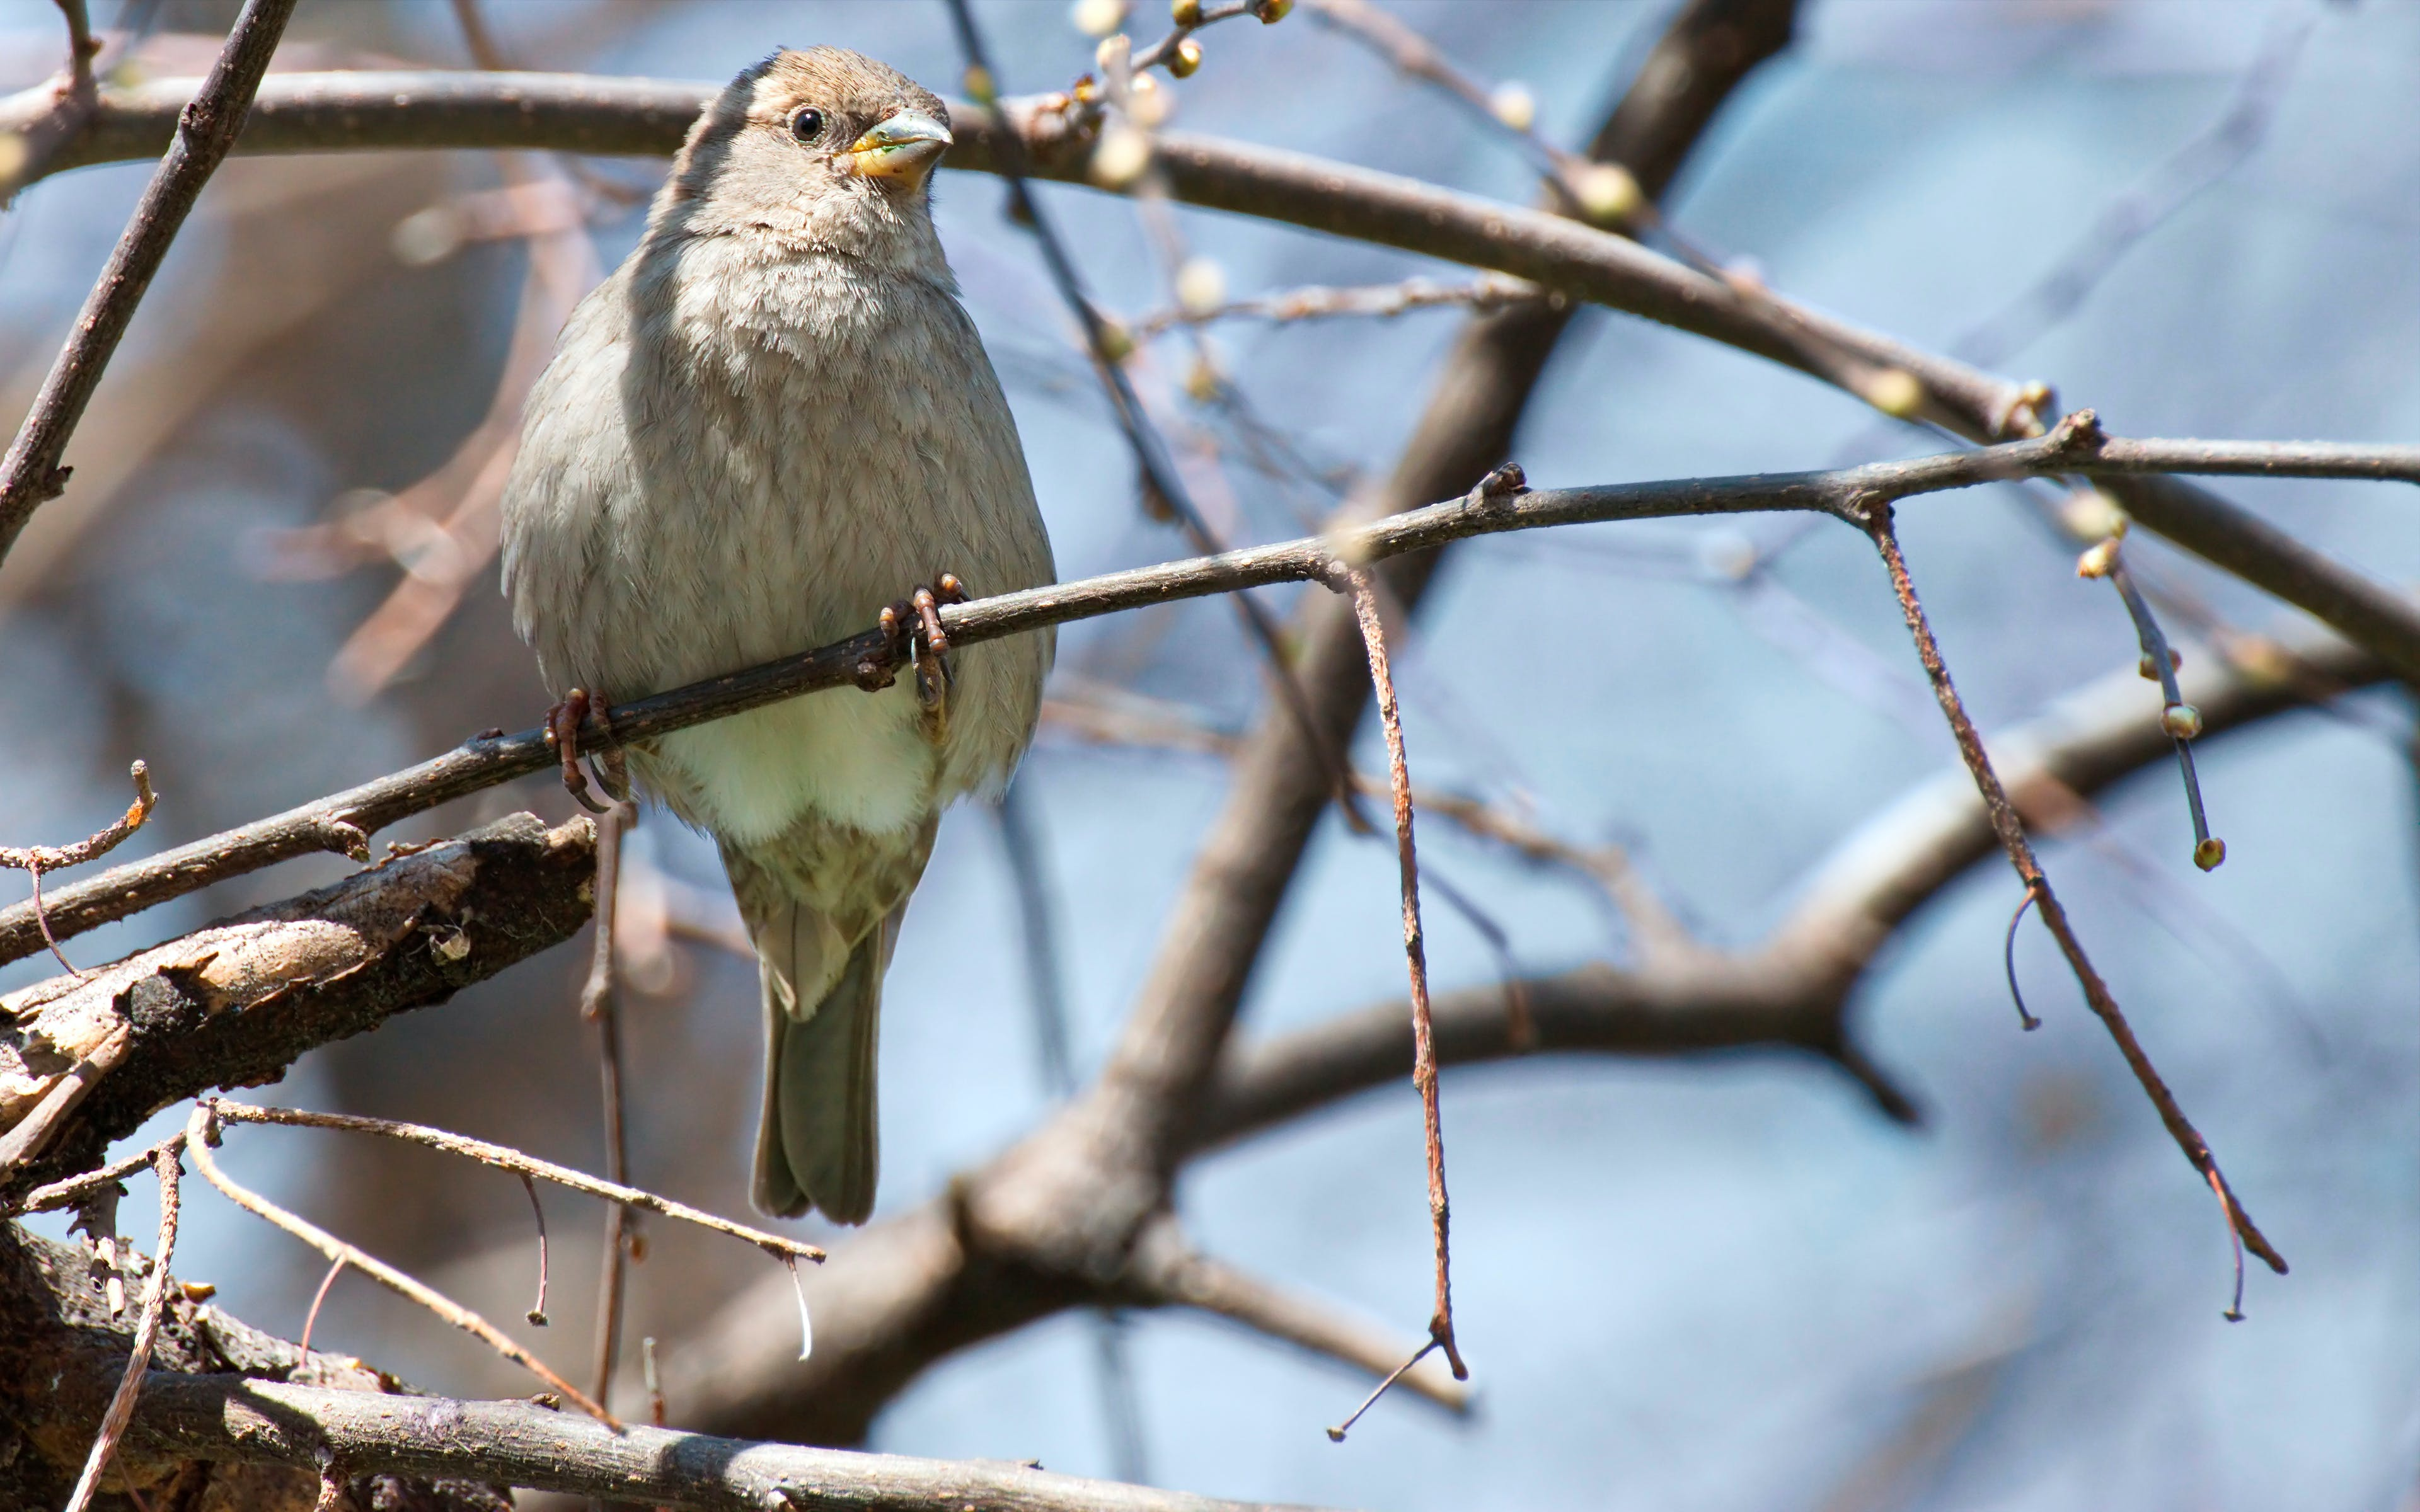 Close-up Photography of Gray Bird Perching on Twig